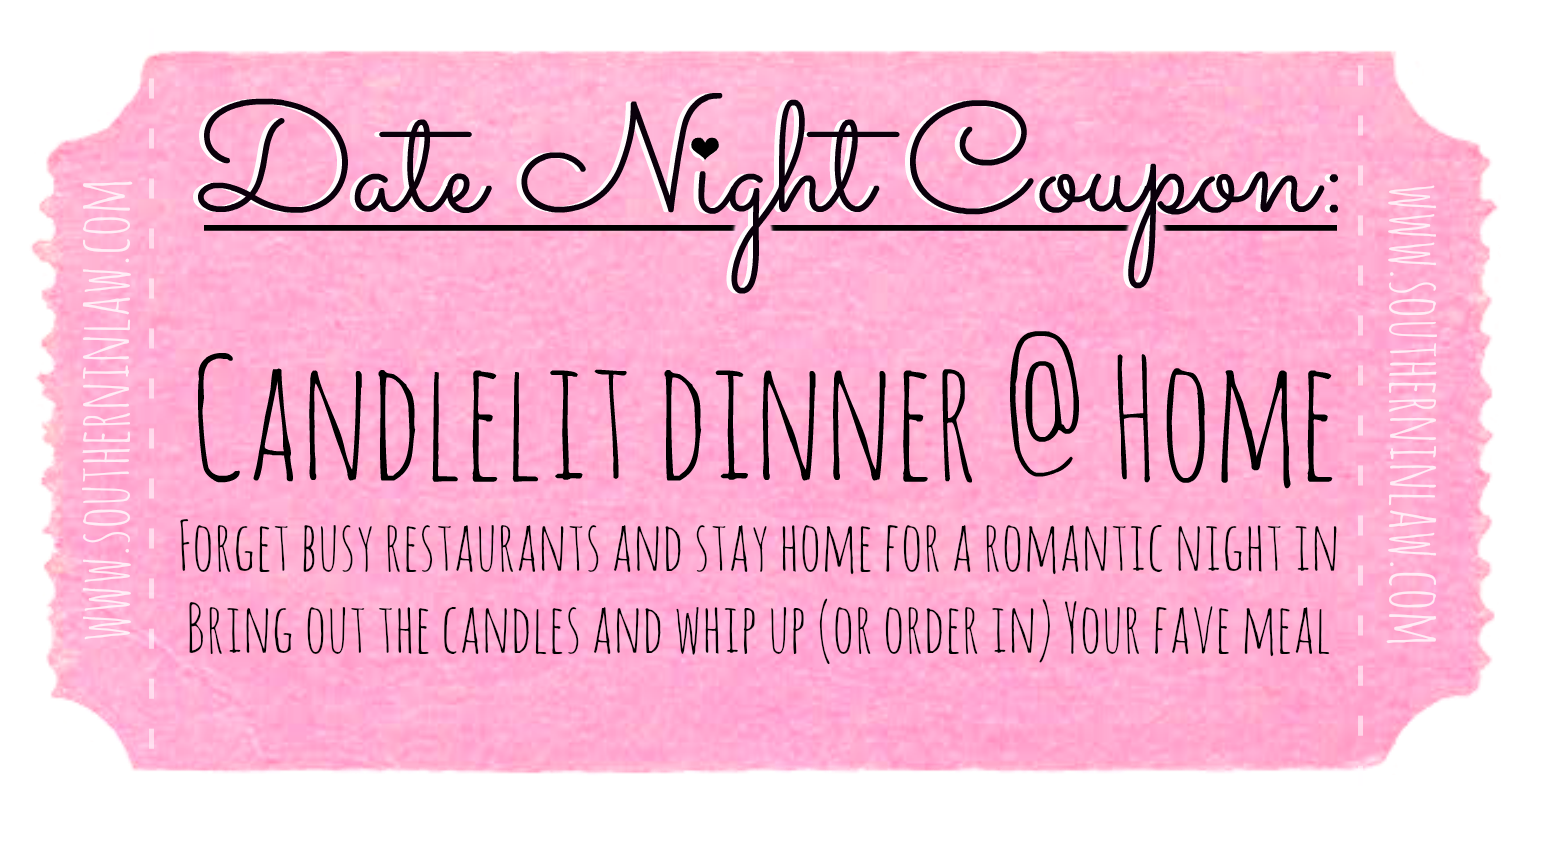 Affordable Date Night Ideas - Date Ideas Coupons - Have a Candelit Dinner at Home